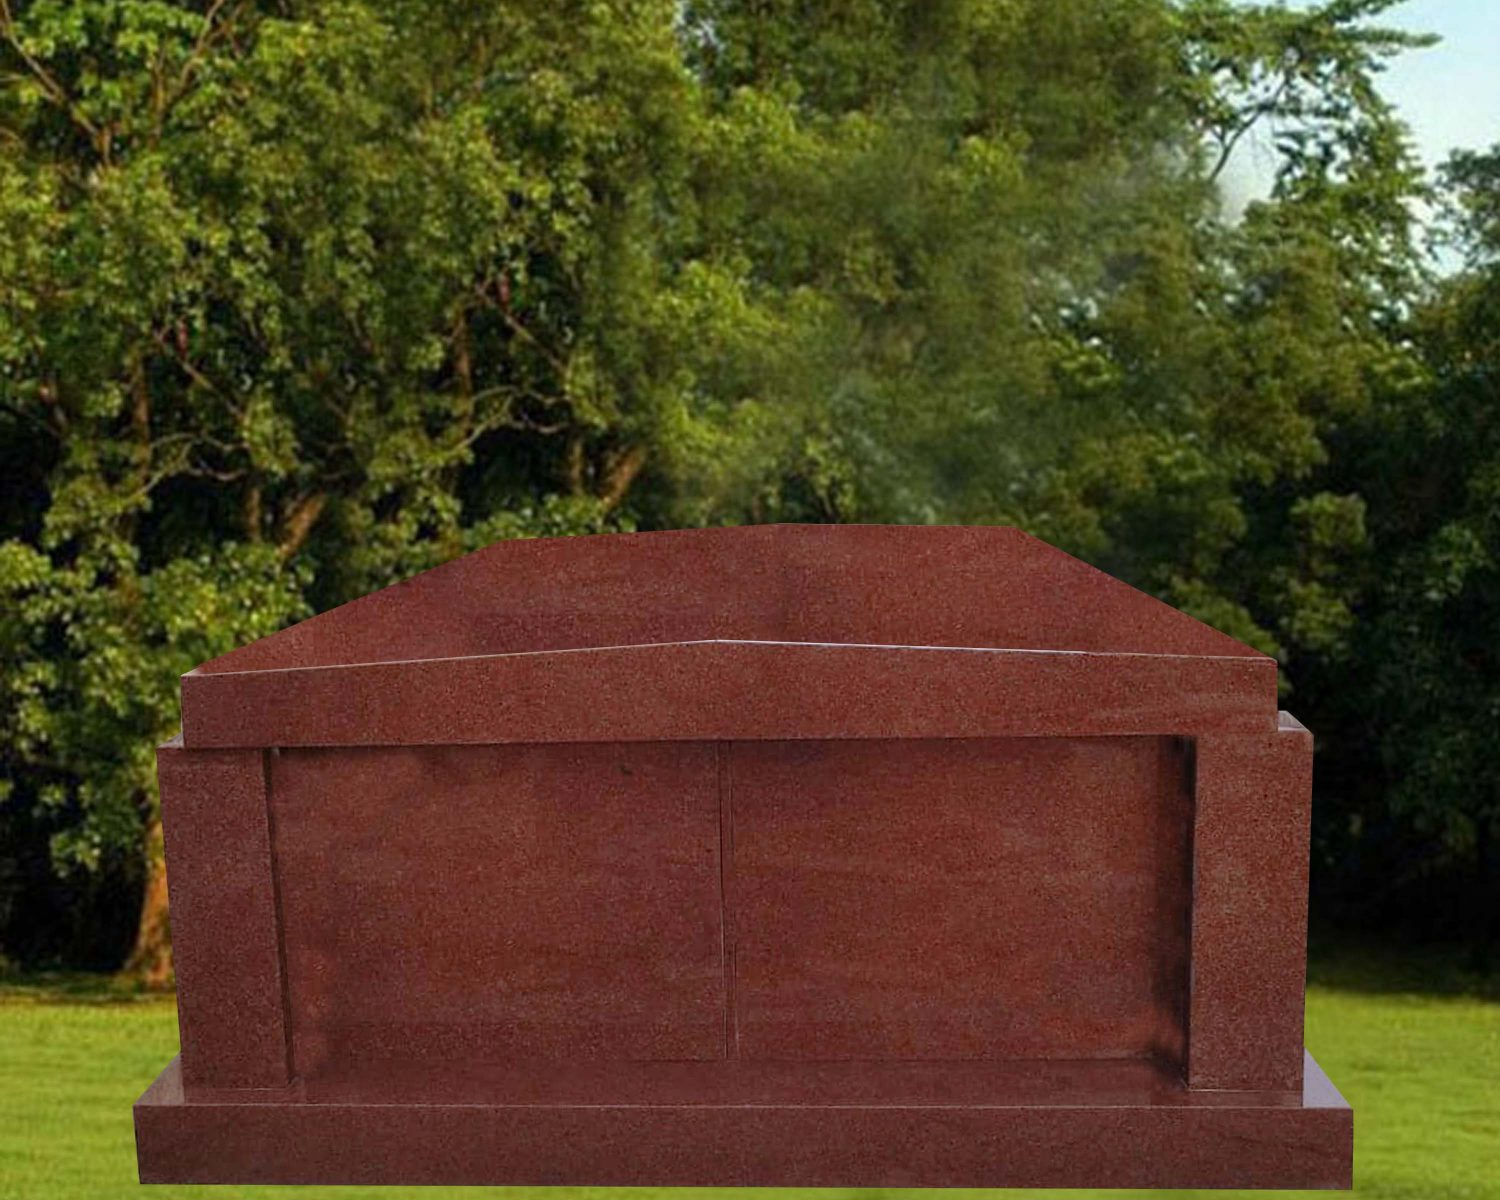 EG-18-221 / India Red / 2 Crypt Mausoleum with Rooftop